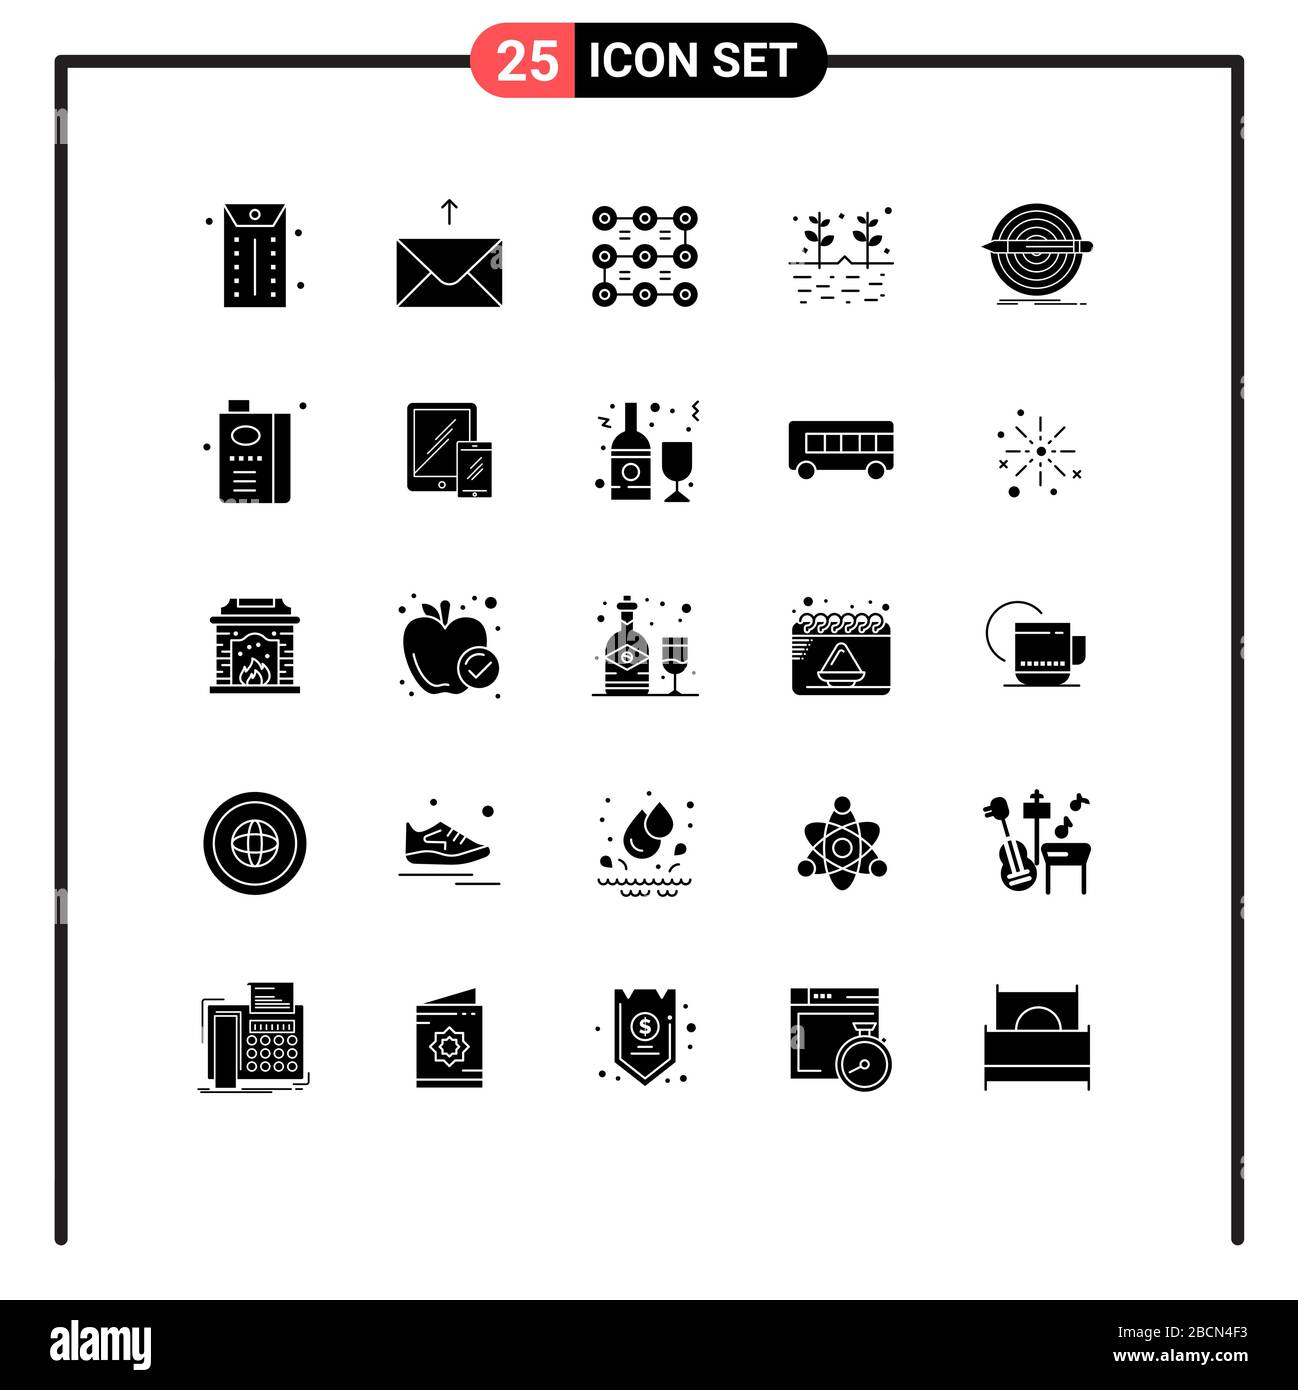 Set Of 25 Modern Ui Icons Symbols Signs For Set Goal Protection